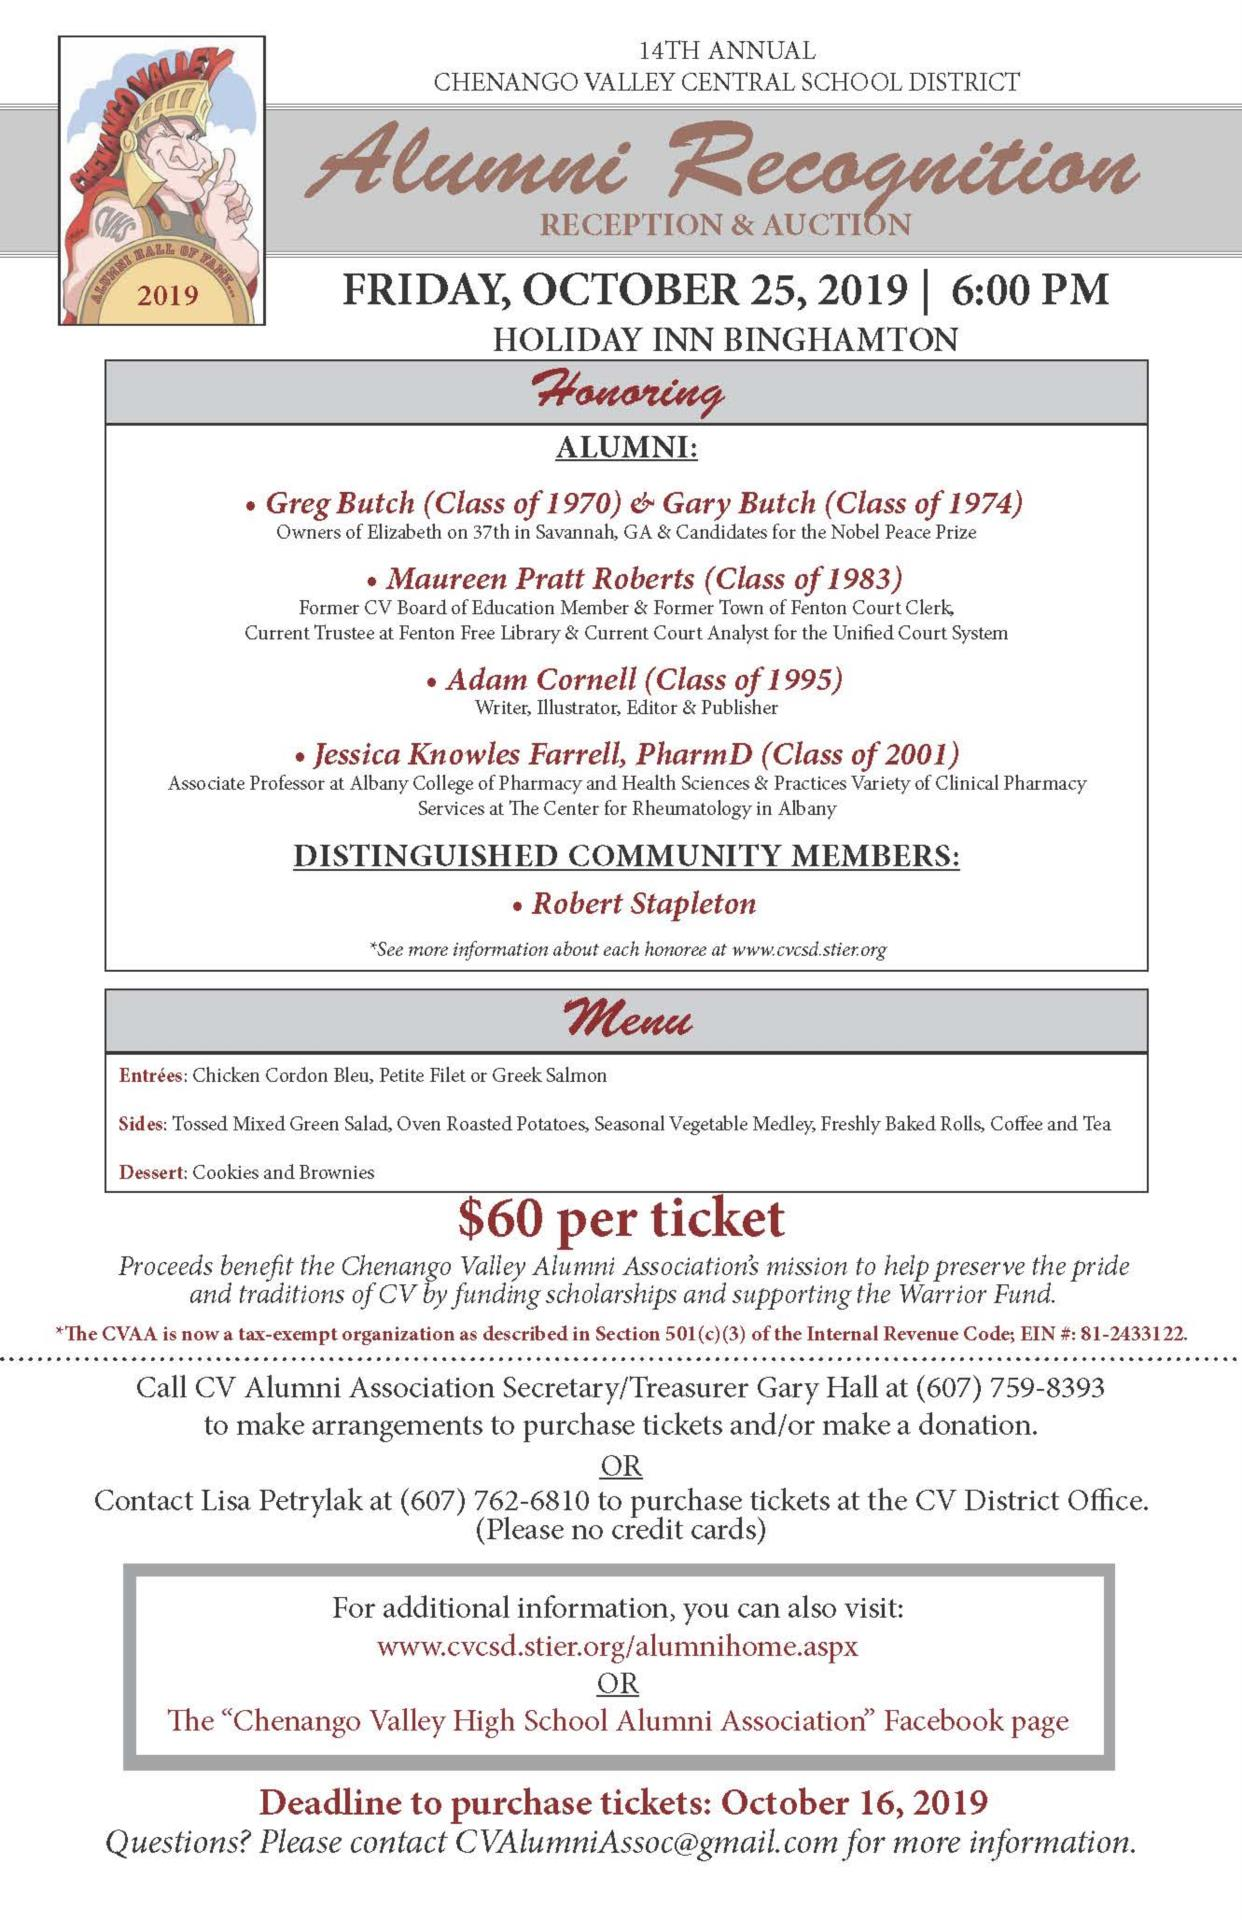 2019 Alumni Recognition Event Save the Date